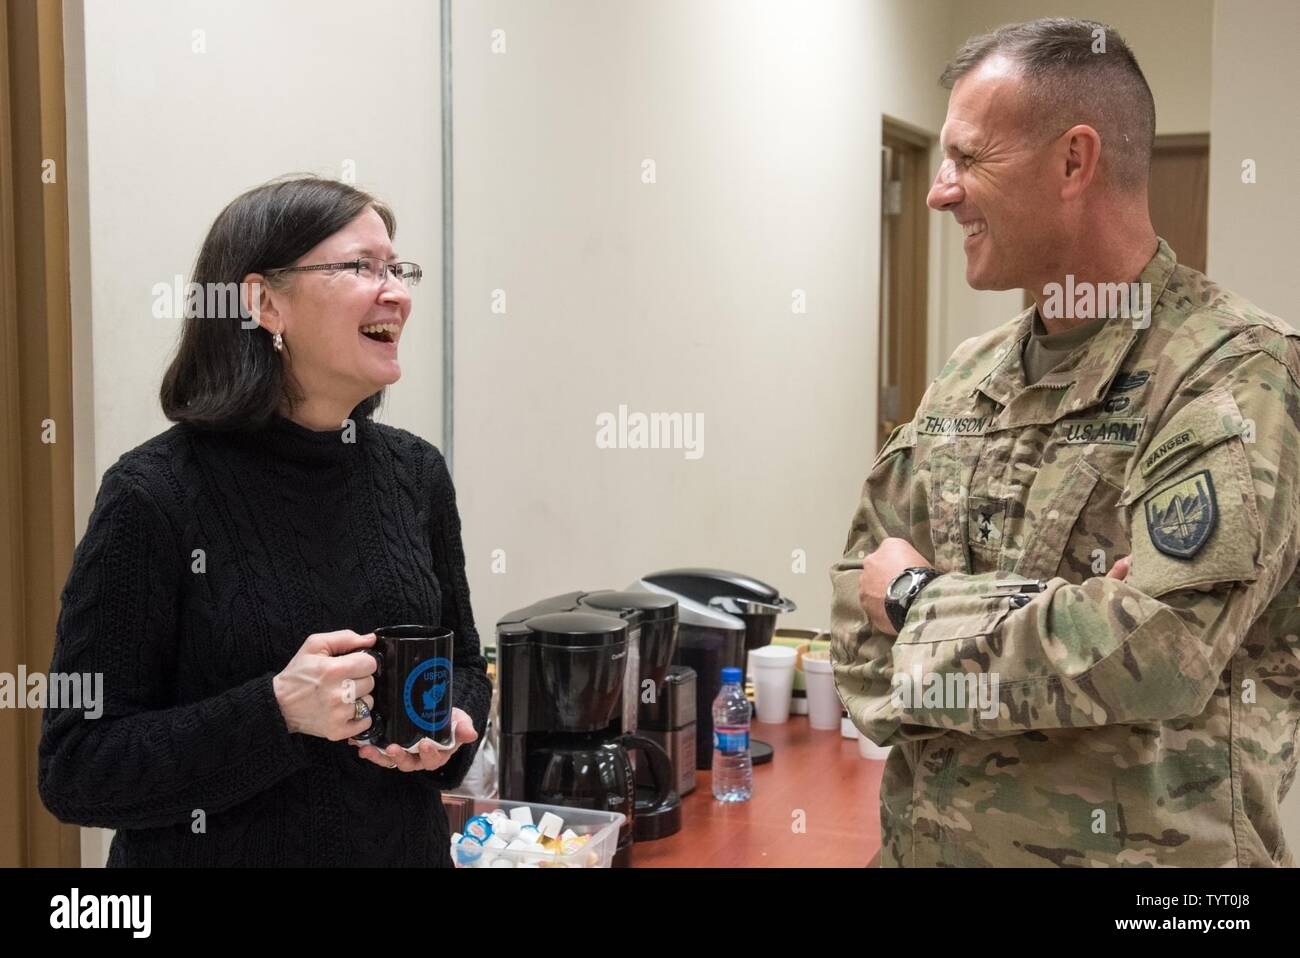 Mrs. Ricki Selva, wife of U.S. Air Force Gen. Paul J. Selva, vice chairman of the Joint Chiefs of Staff, speaks with U.S. Army Maj. Gen. John Thomson, U.S. Forces – Afghanistan deputy commander for support, at Bagram Airfield, Afghanistan, Nov. 24, 2016. Gen. Selva and Mrs. Selva visited troops across Afghanistan to spend Thanksgiving Day with them and thank them for their service. Stock Photo